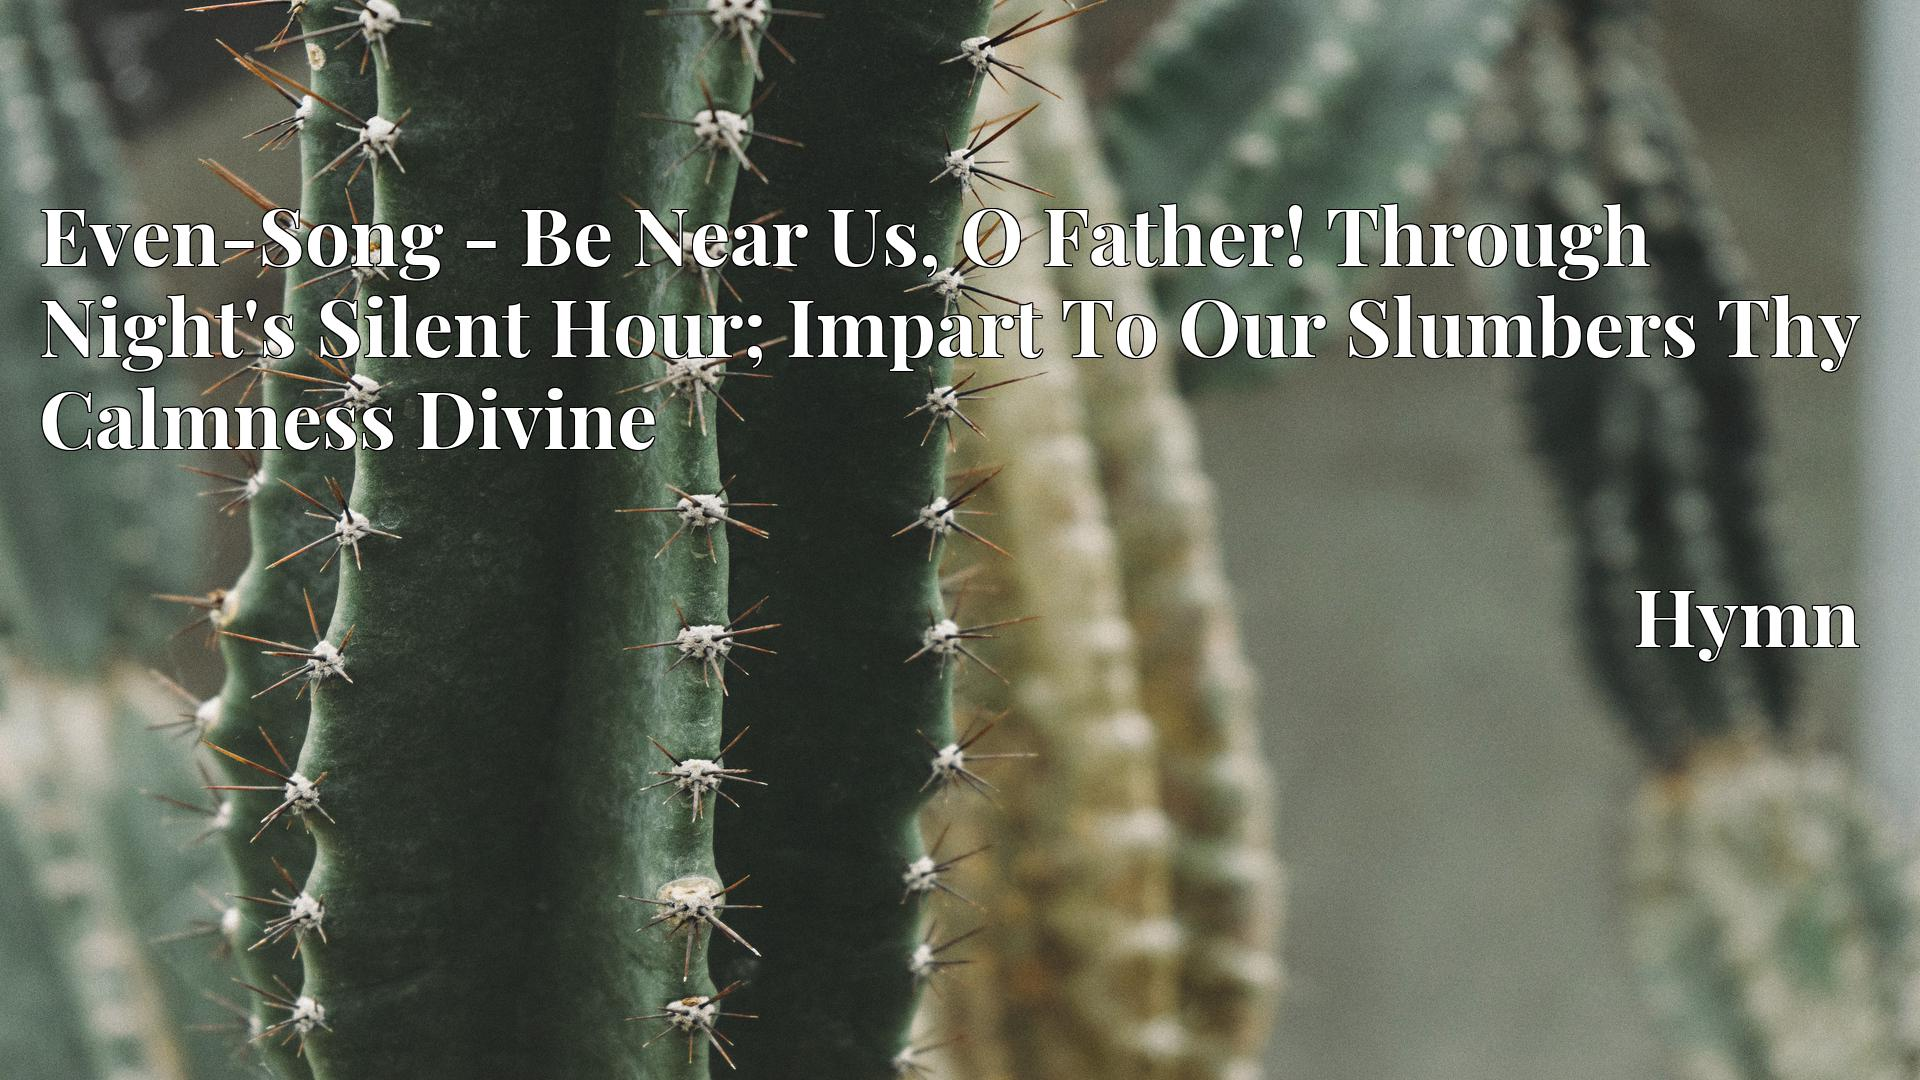 Even-Song - Be Near Us, O Father! Through Night's Silent Hour; Impart To Our Slumbers Thy Calmness Divine - Hymn